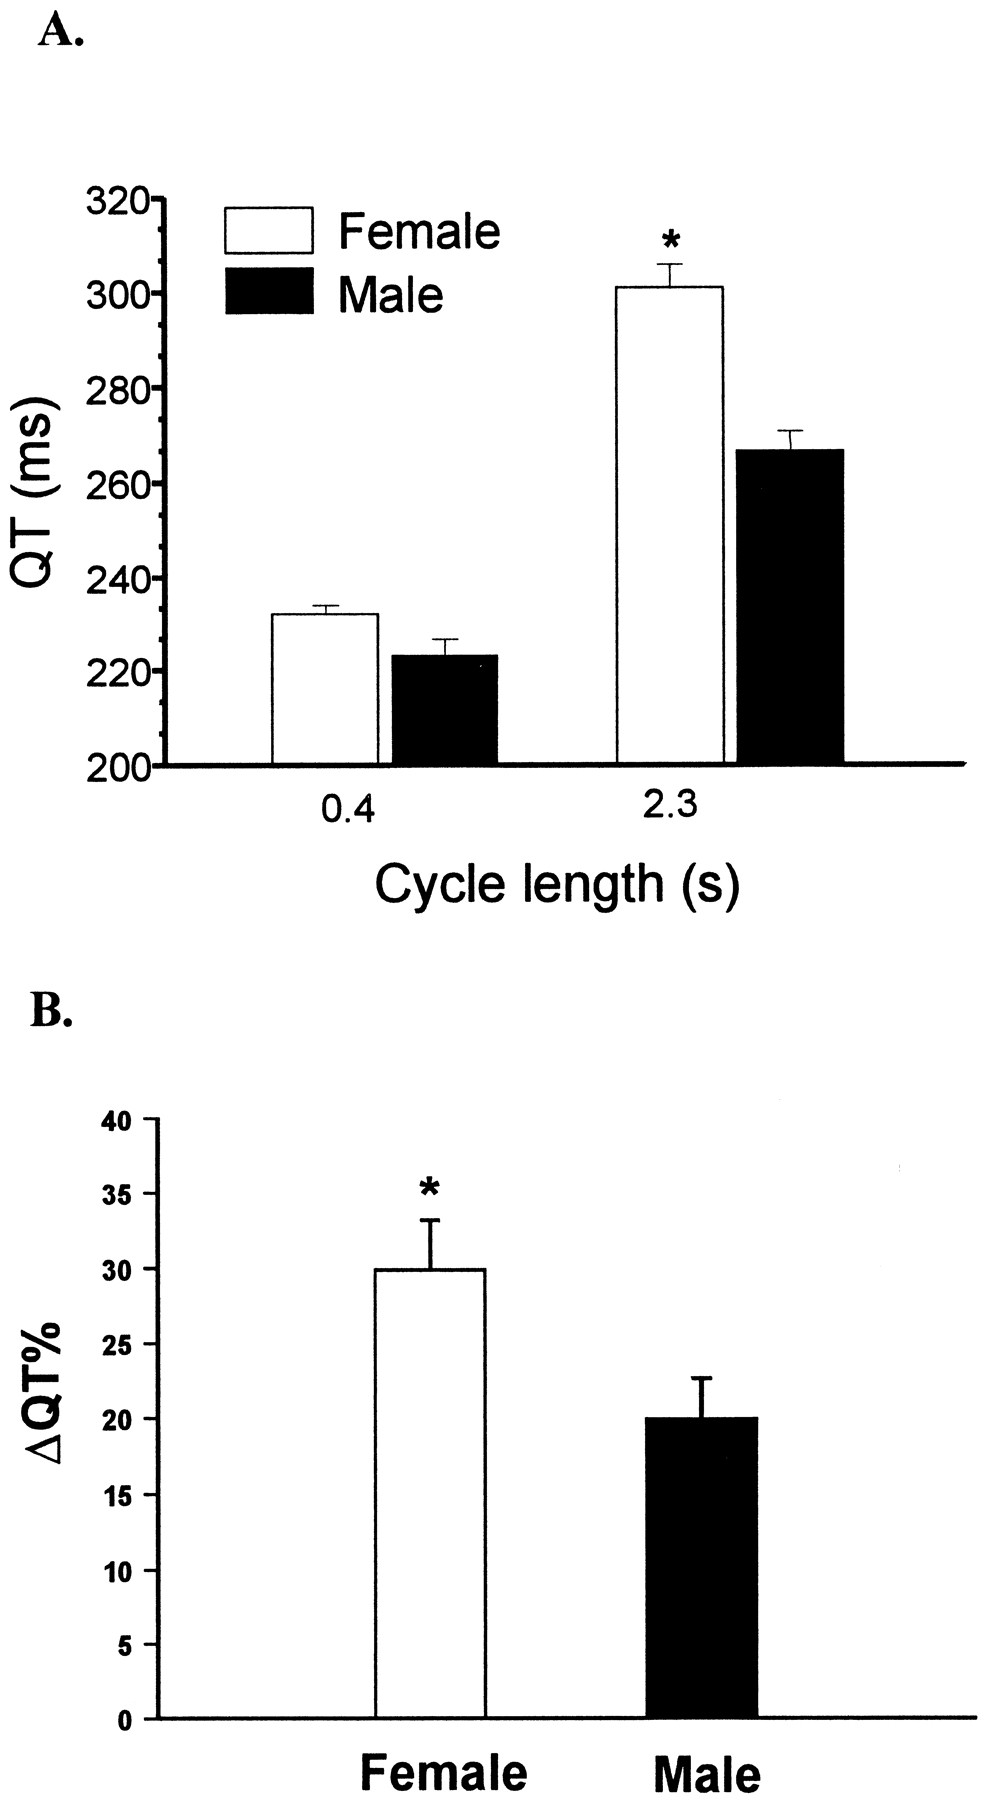 Gender Difference in the Cycle Length-Dependent QT and Potassium